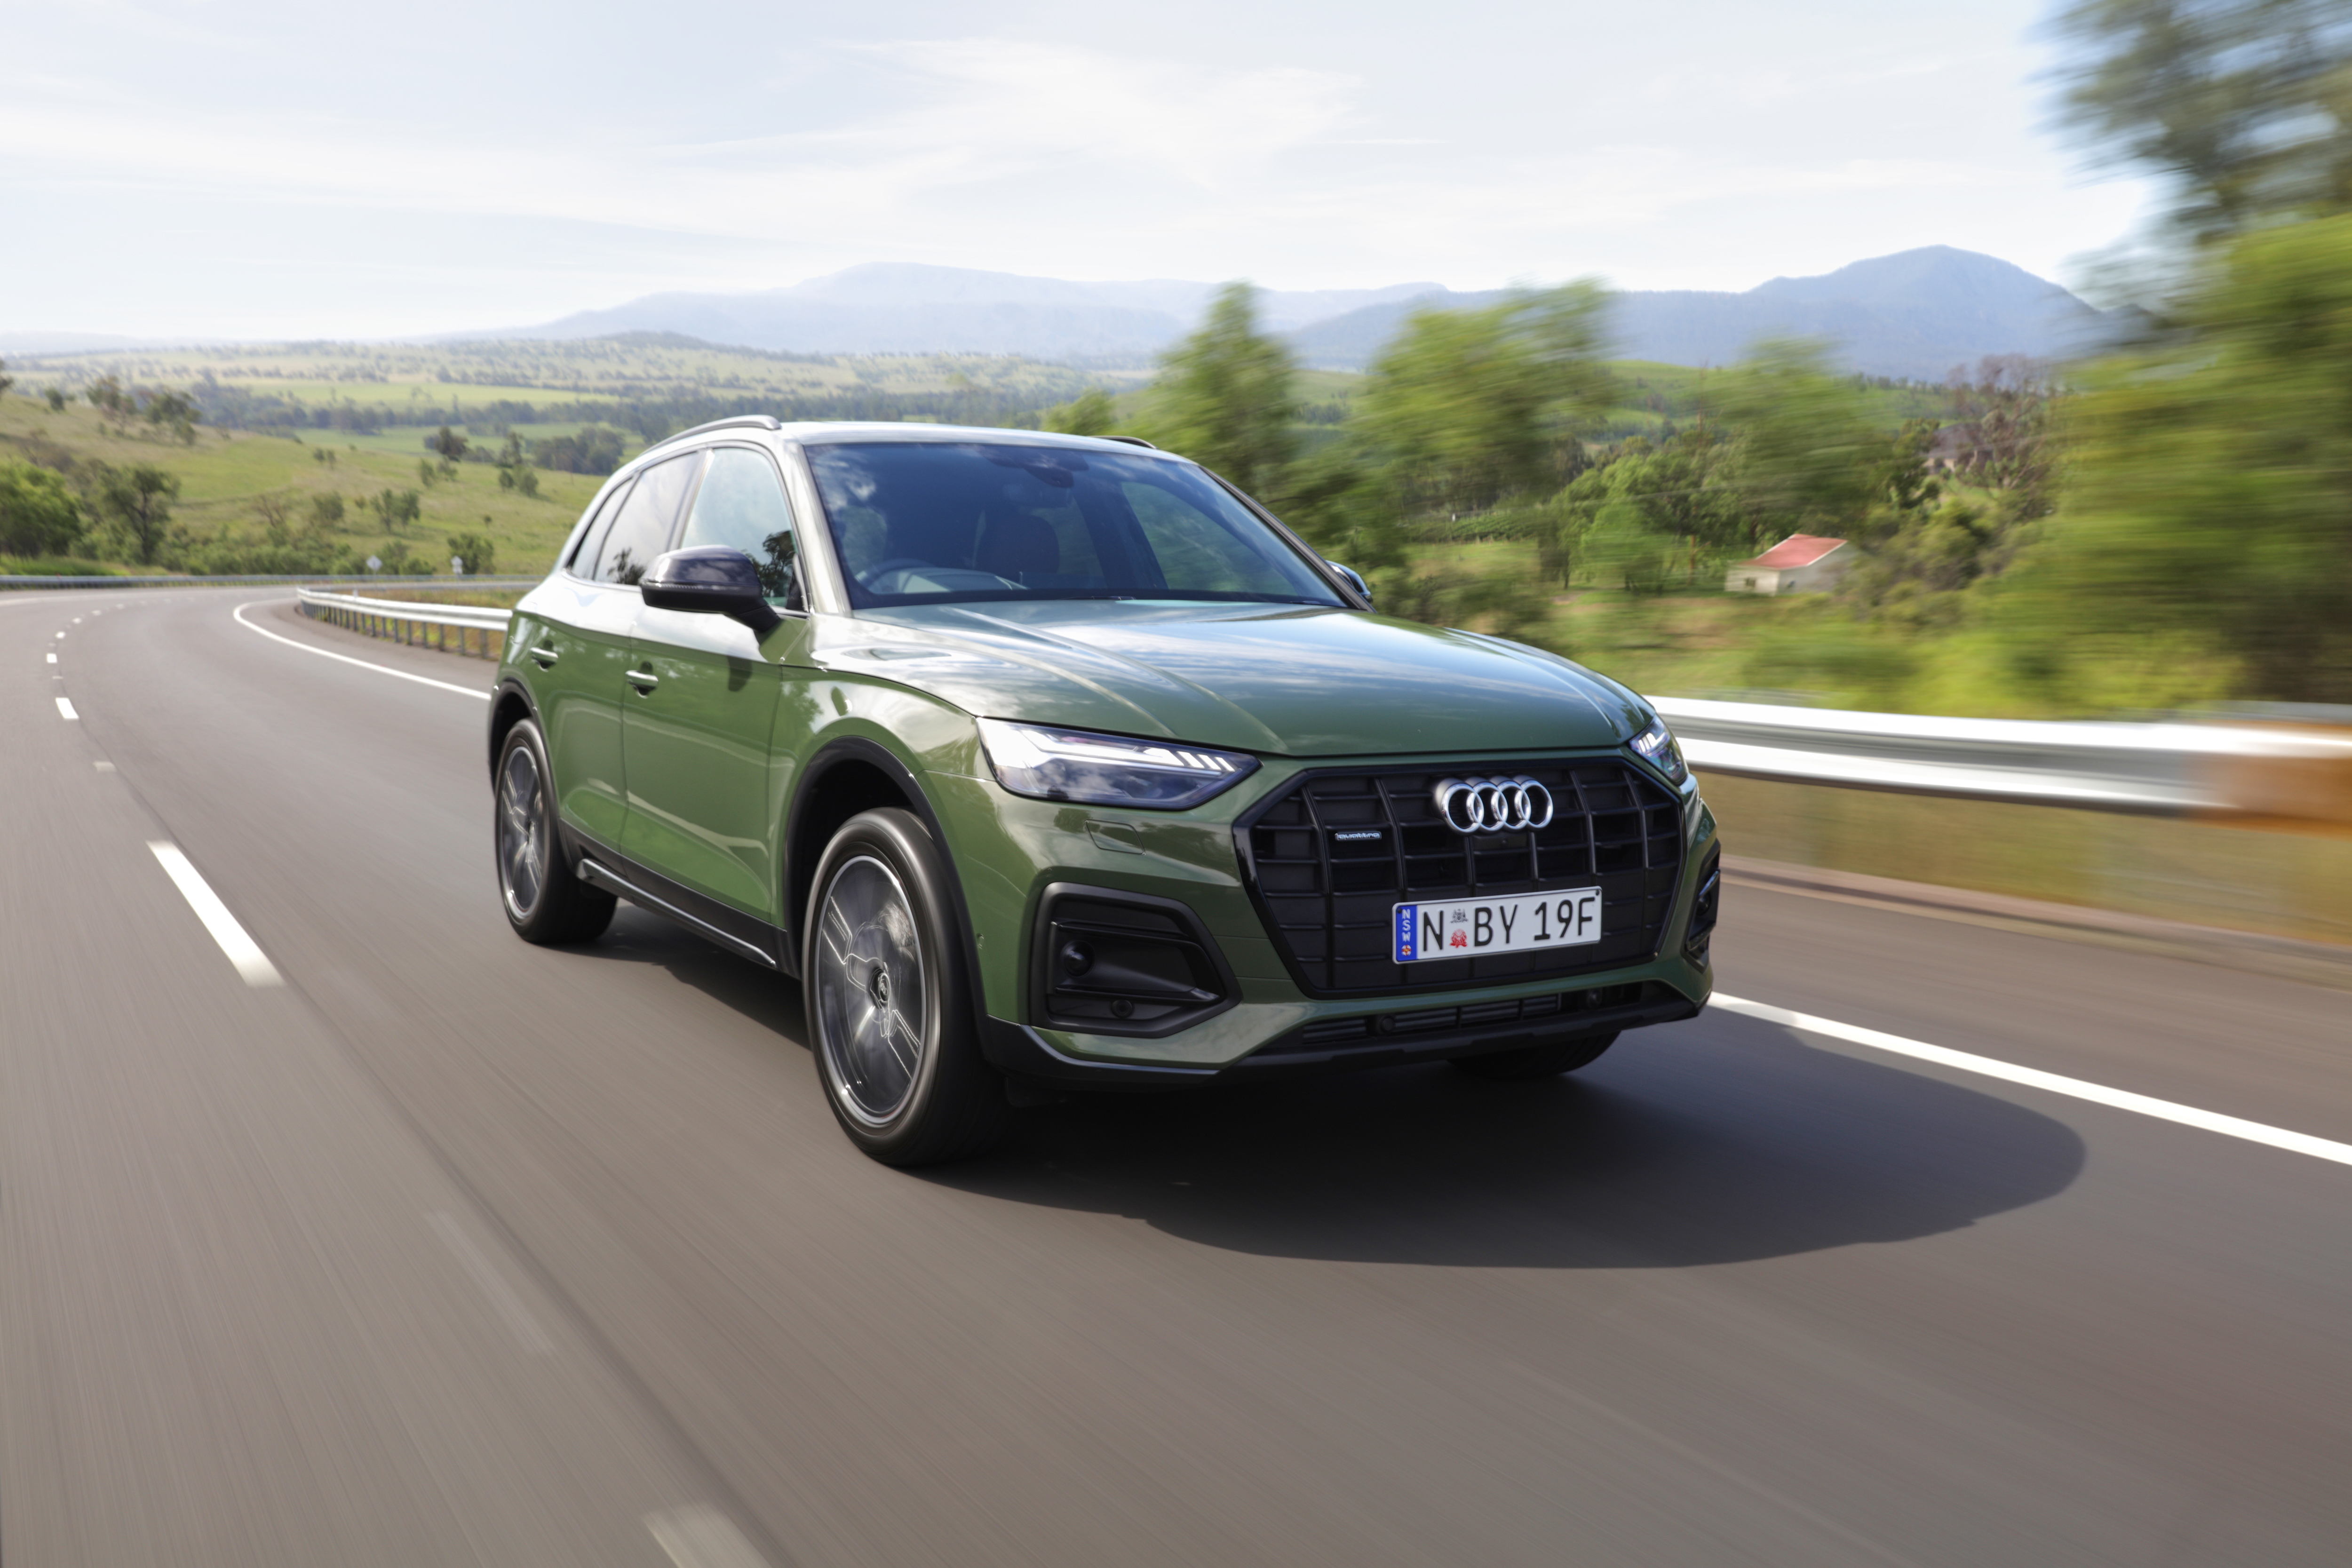 Audi's popular mid-size Q5 SUV gets some worthwhile updates